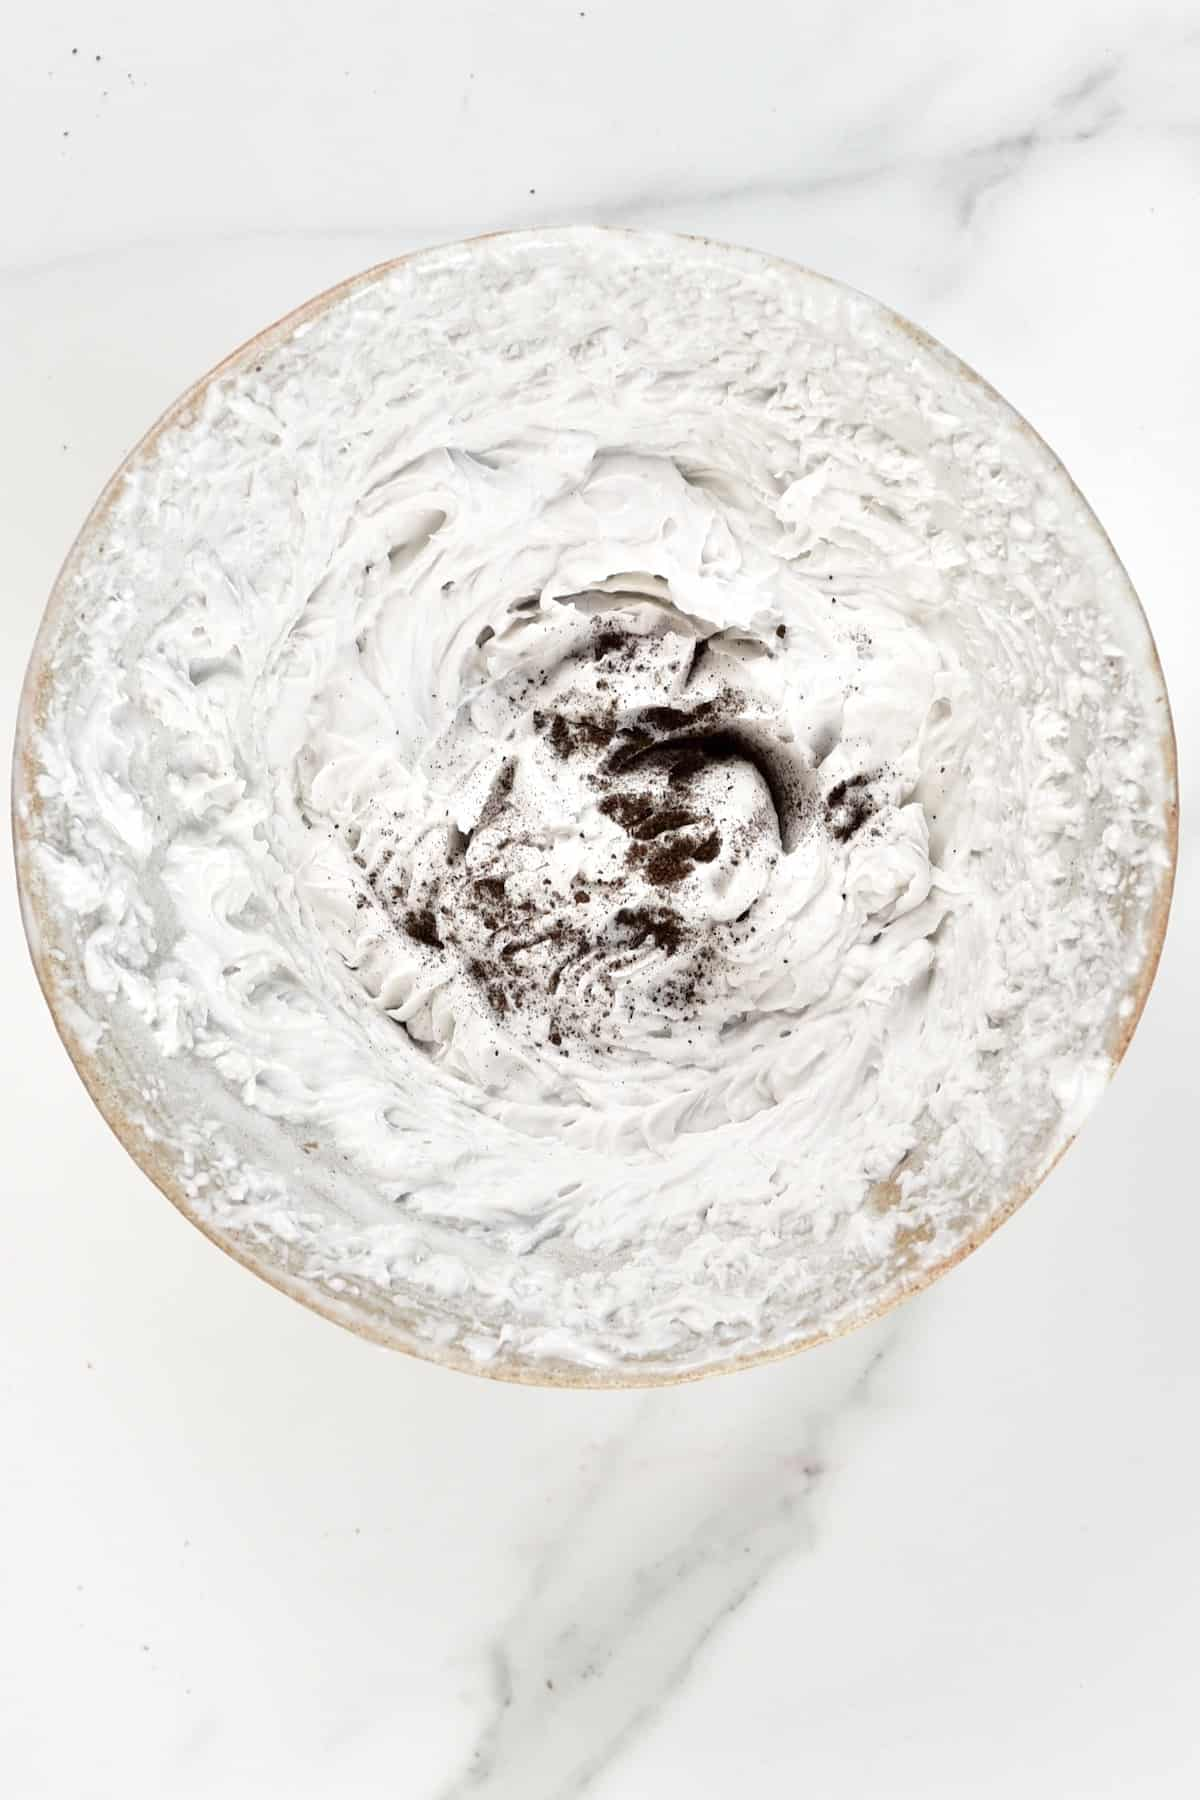 Whipped coconut cream sprinkled with vanilla powder